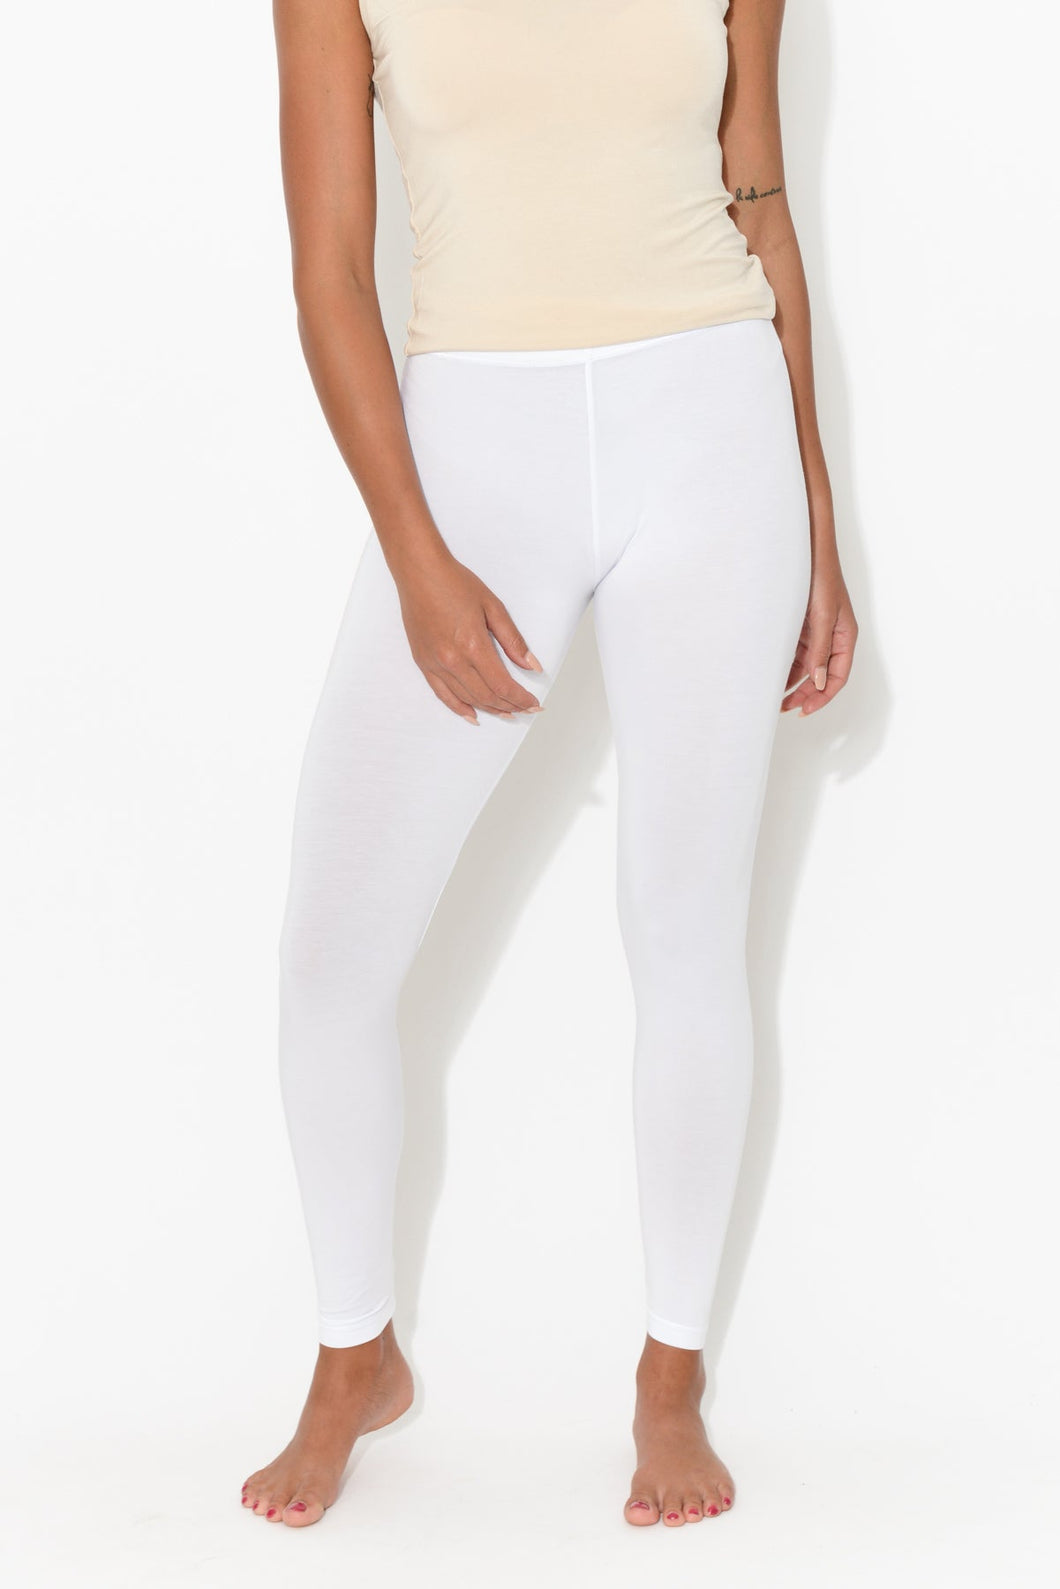 White Modal 7/8 Legging